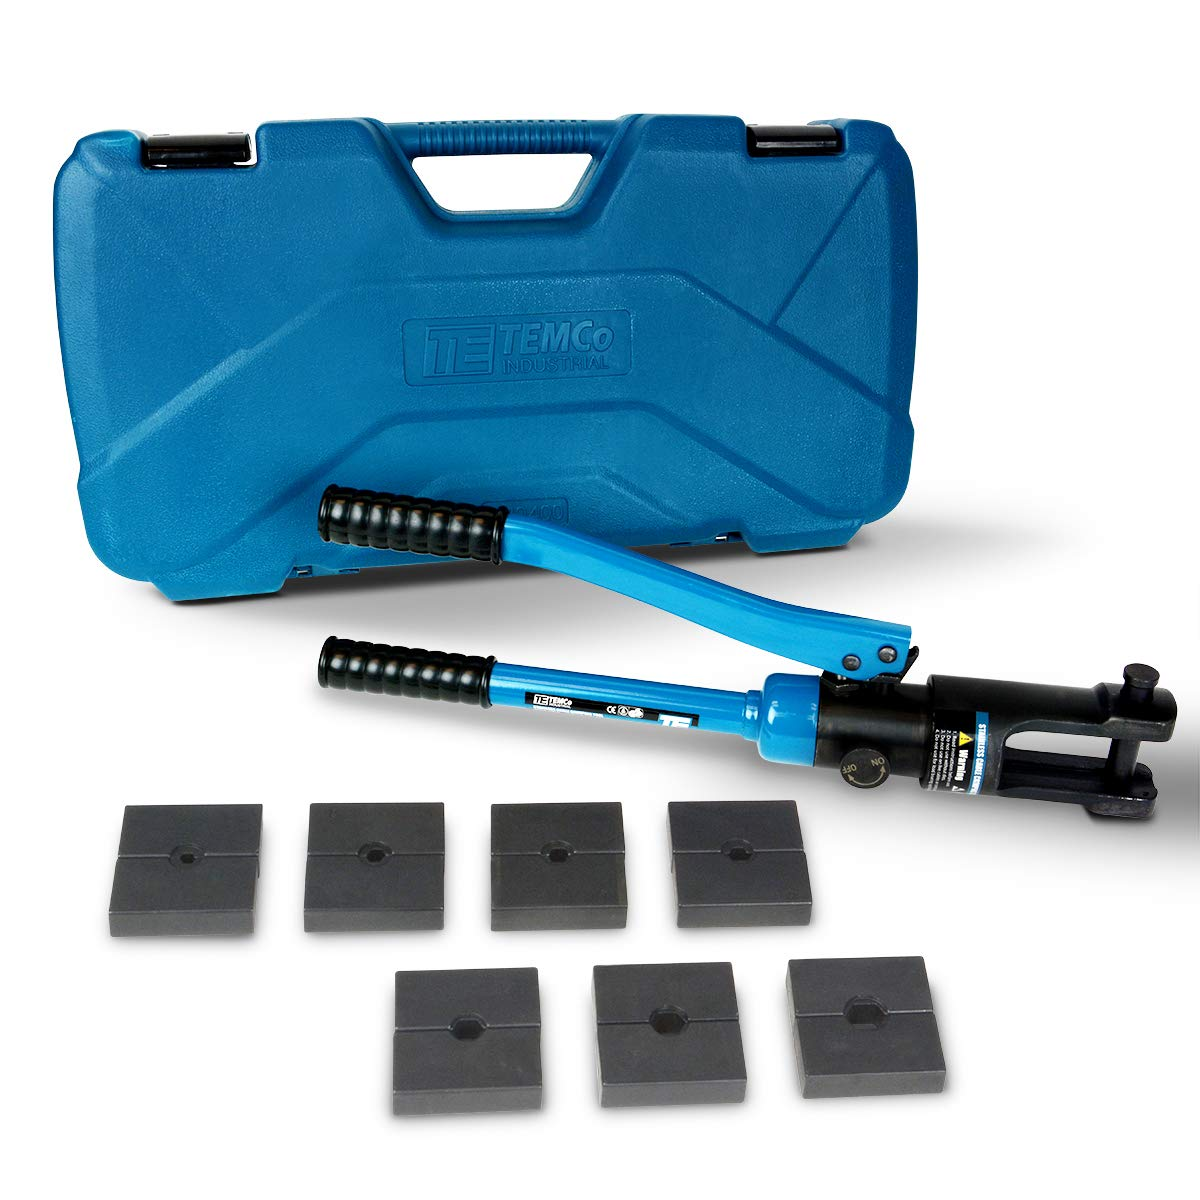 """TEMCo Hydraulic Crimping Tool for Stainless Steel Cable Railing Fittings – 11 US Tons - 1/16"""" to 1/4"""" Cable Fitting Compatibility"""